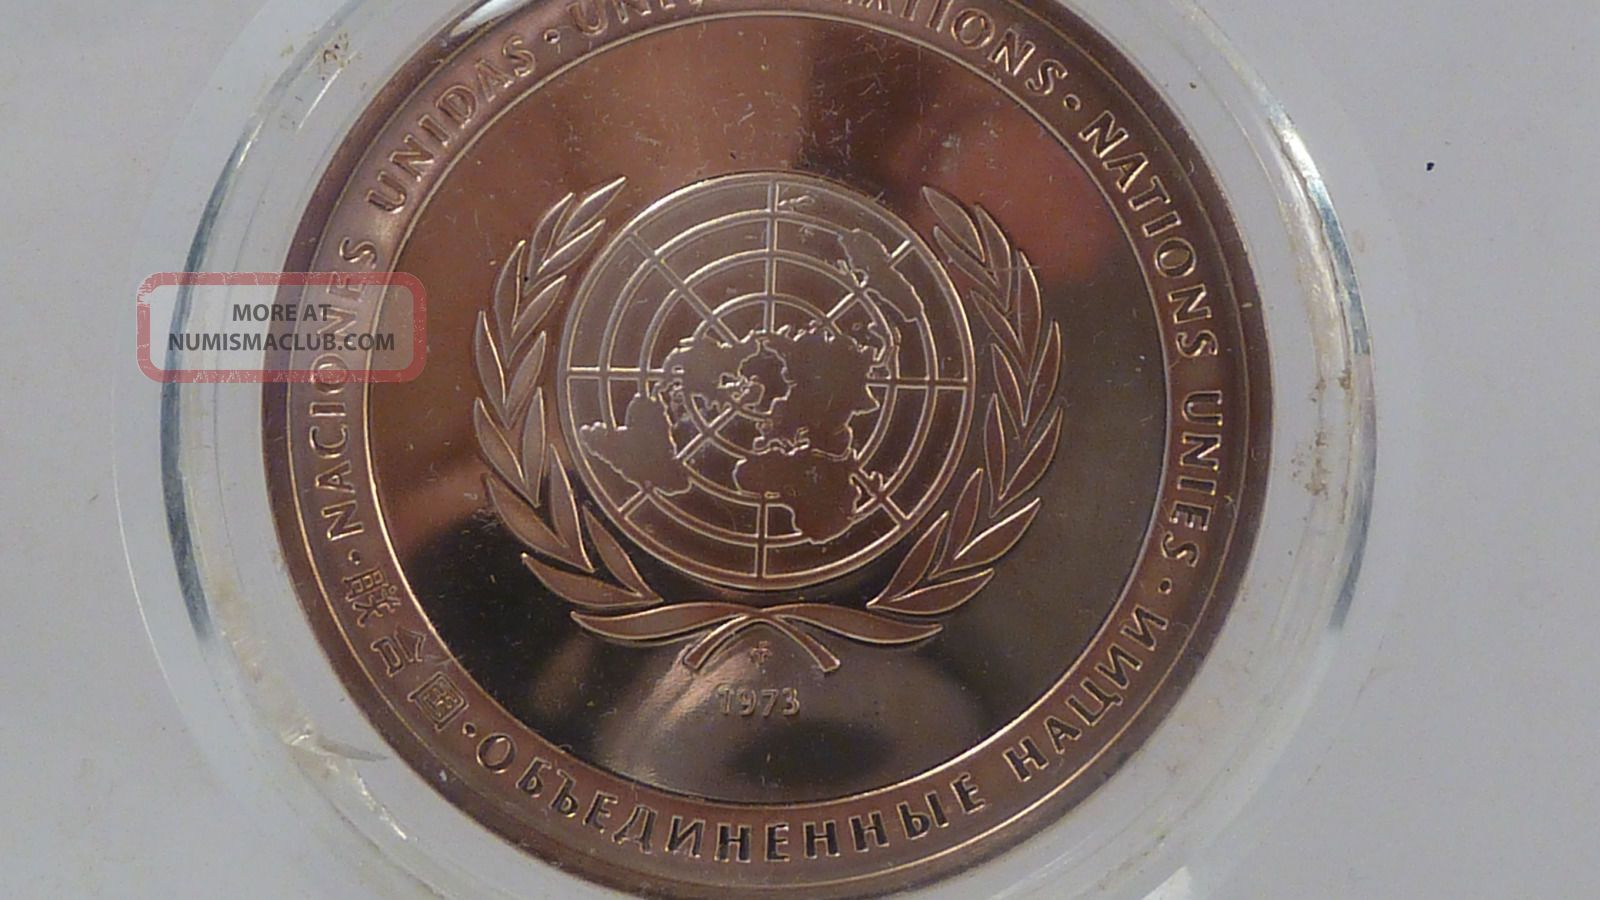 Rare 1973 Proof United Nations Peace Medal Token Sterling